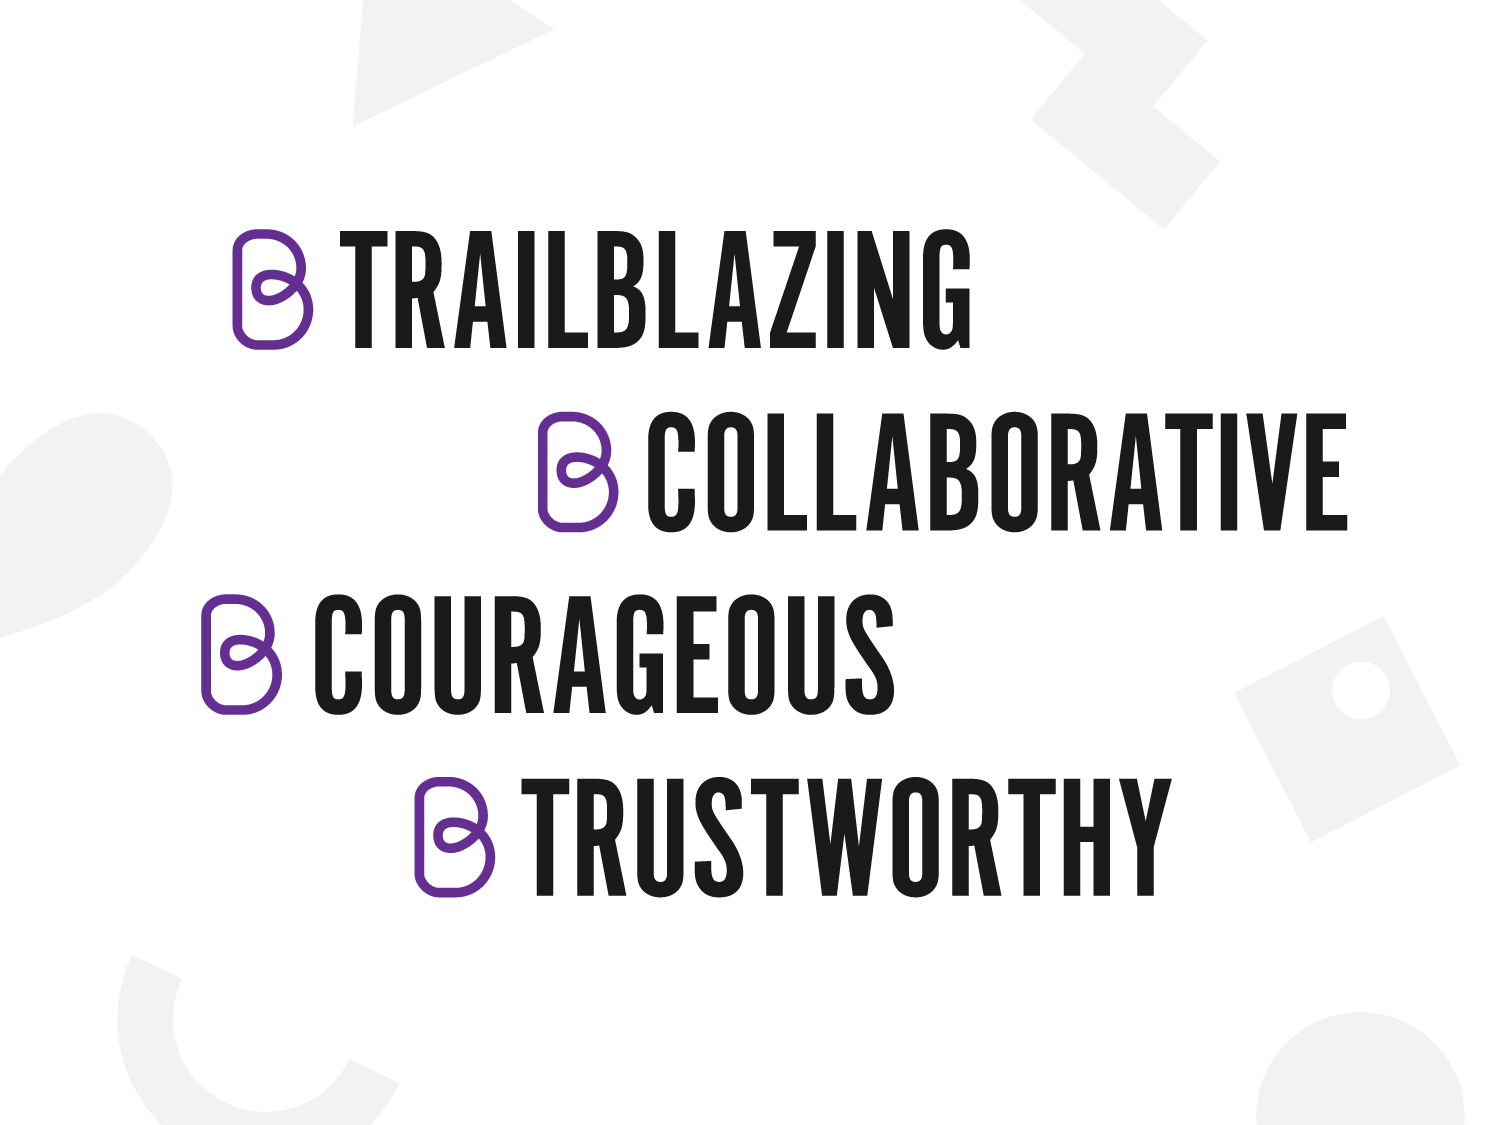 Typographical image of Brook's values - Trailblazing, Collaborative, Courageous, Trustworthy